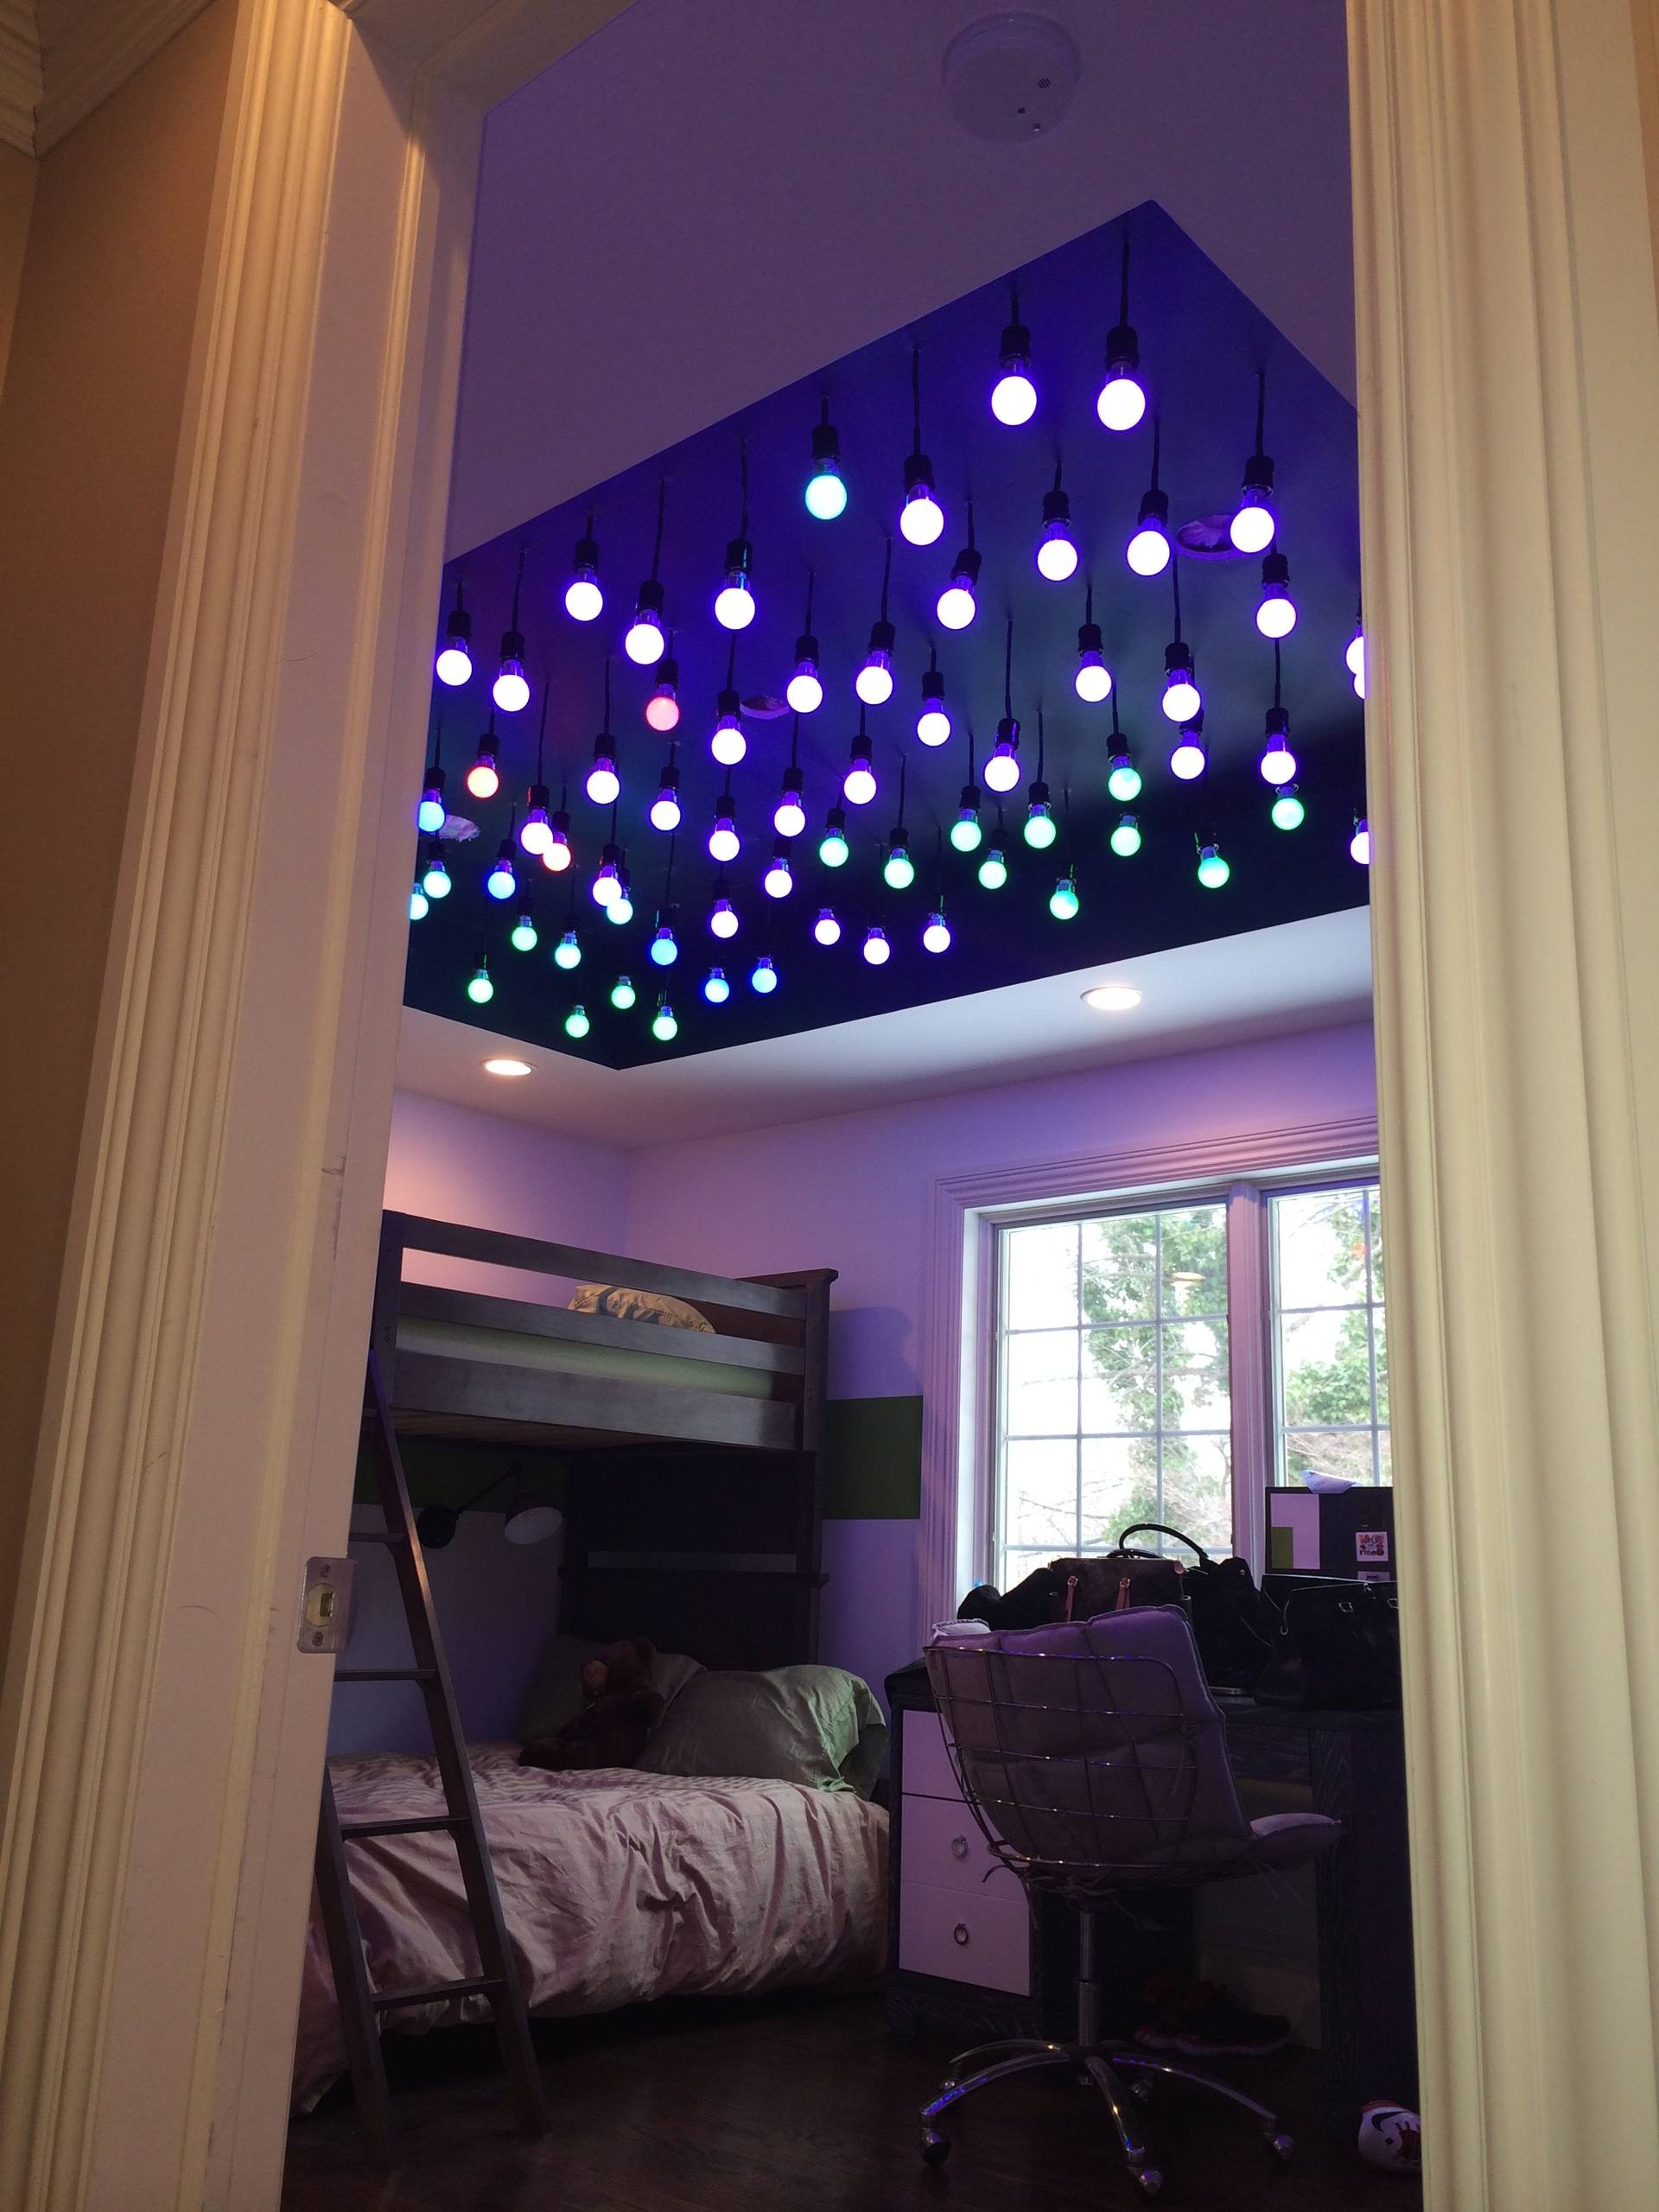 75 Beautiful Purple Bedroom Pictures Ideas May 2021 Houzz